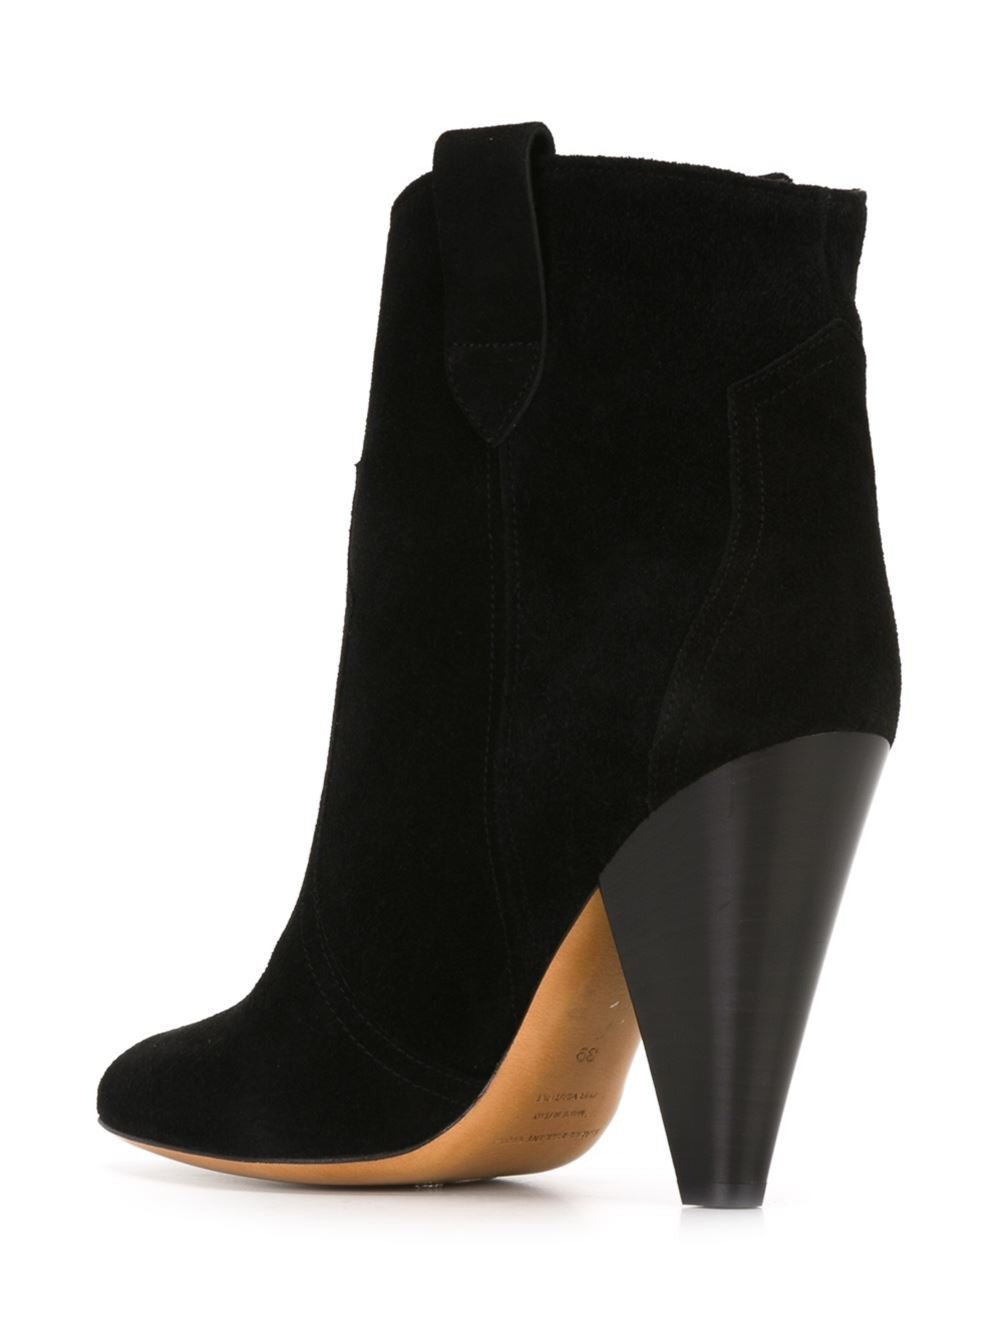 Heeled Reverse Leather Bootie | ROXANN BO0062-16POO1S